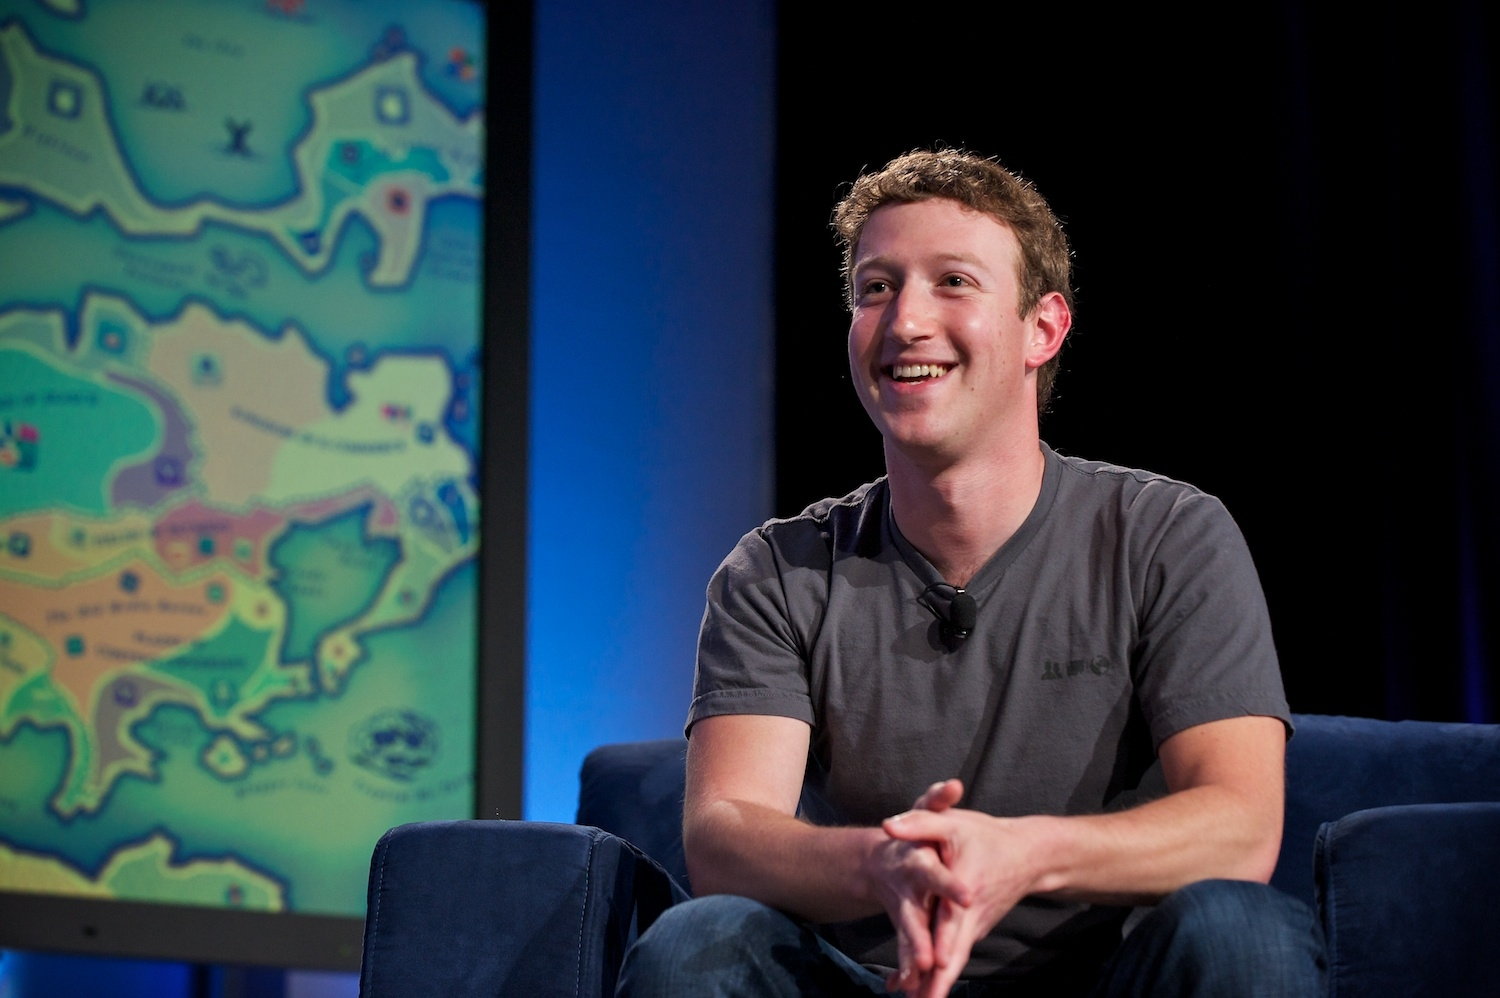 Mark Zuckerberg milliardaire